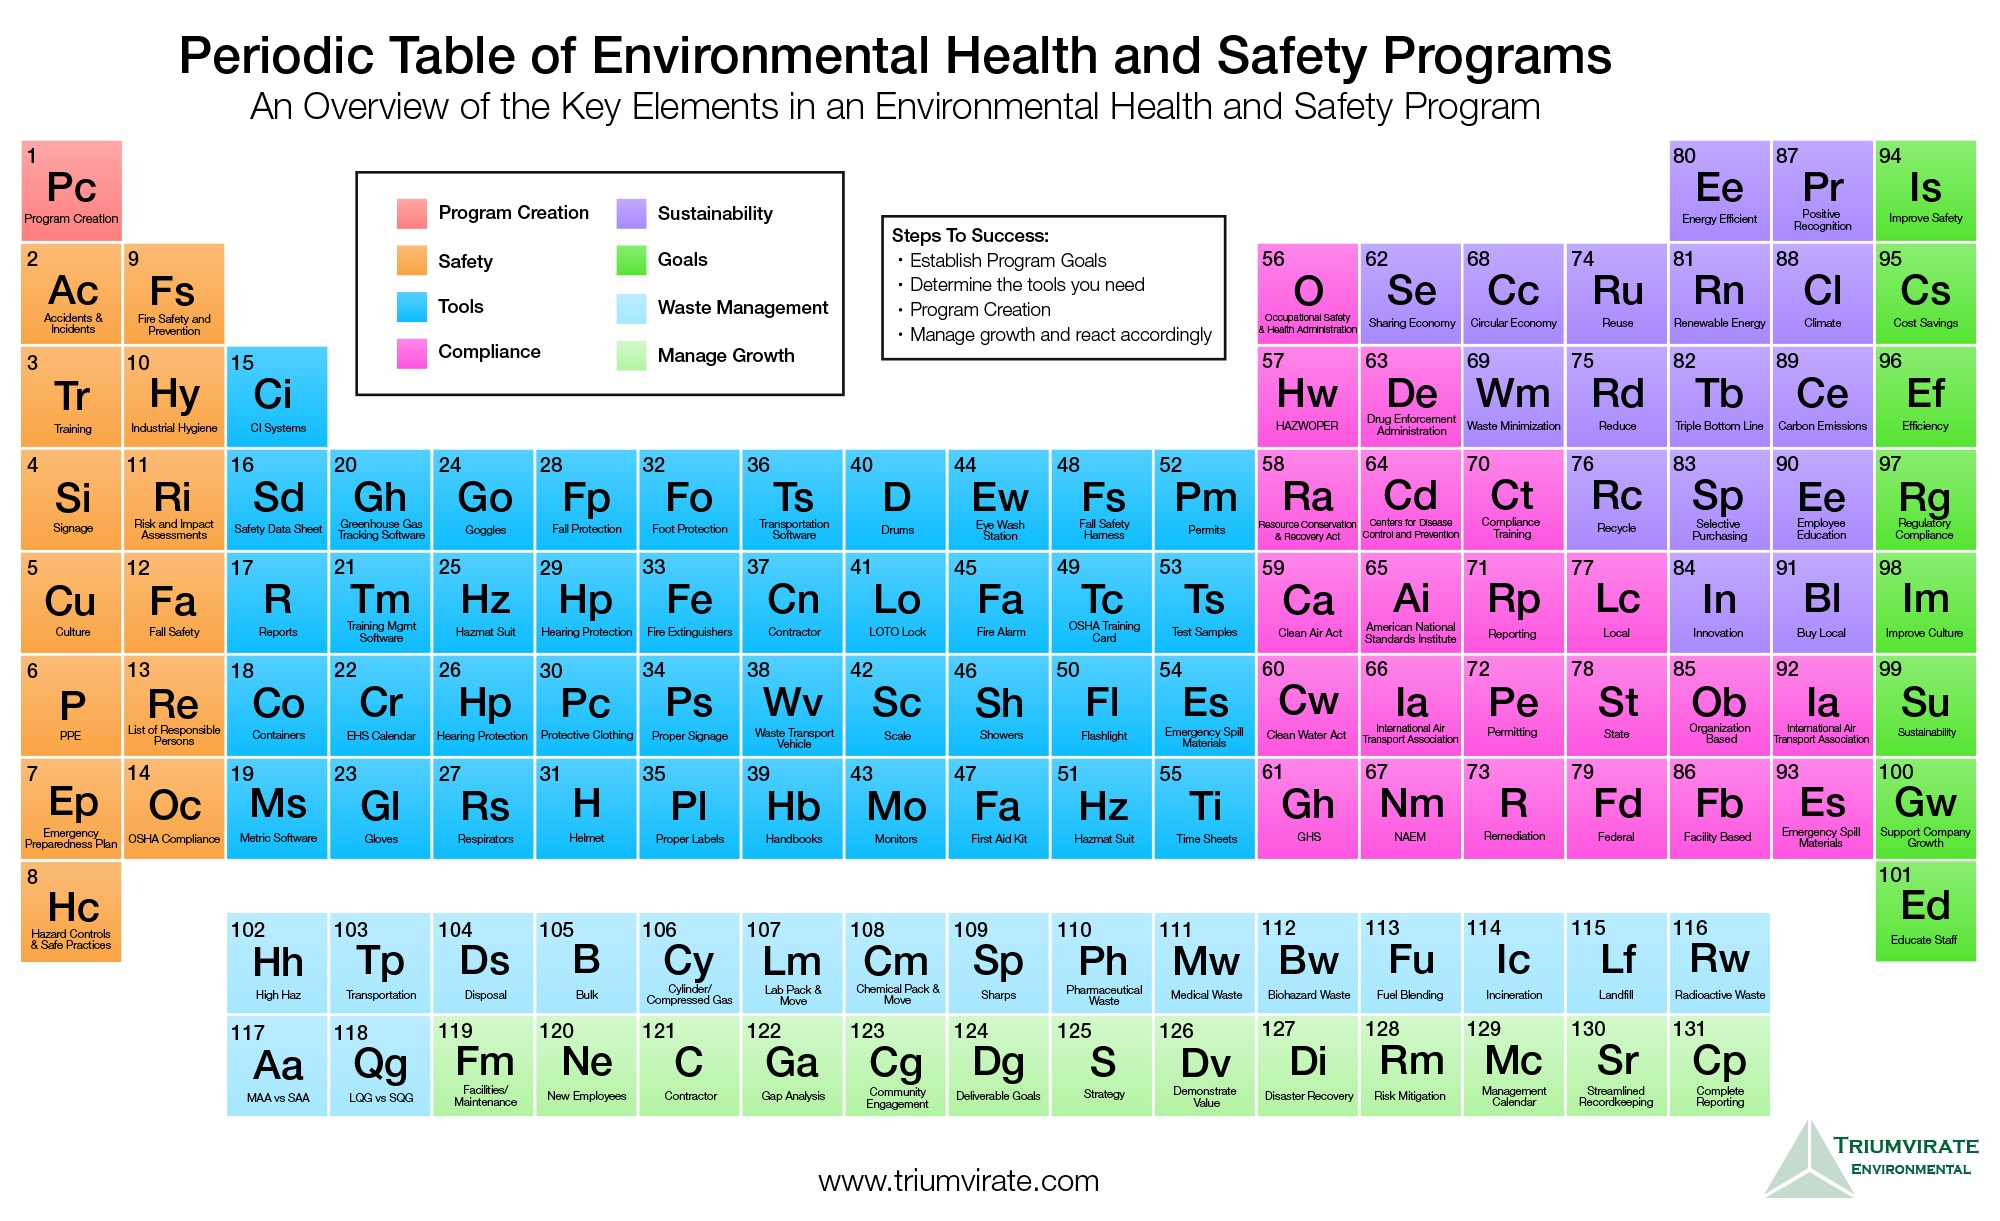 Ca periodic table images periodic table images tc in periodic table gallery periodic table images tc in periodic table images periodic table images gamestrikefo Image collections